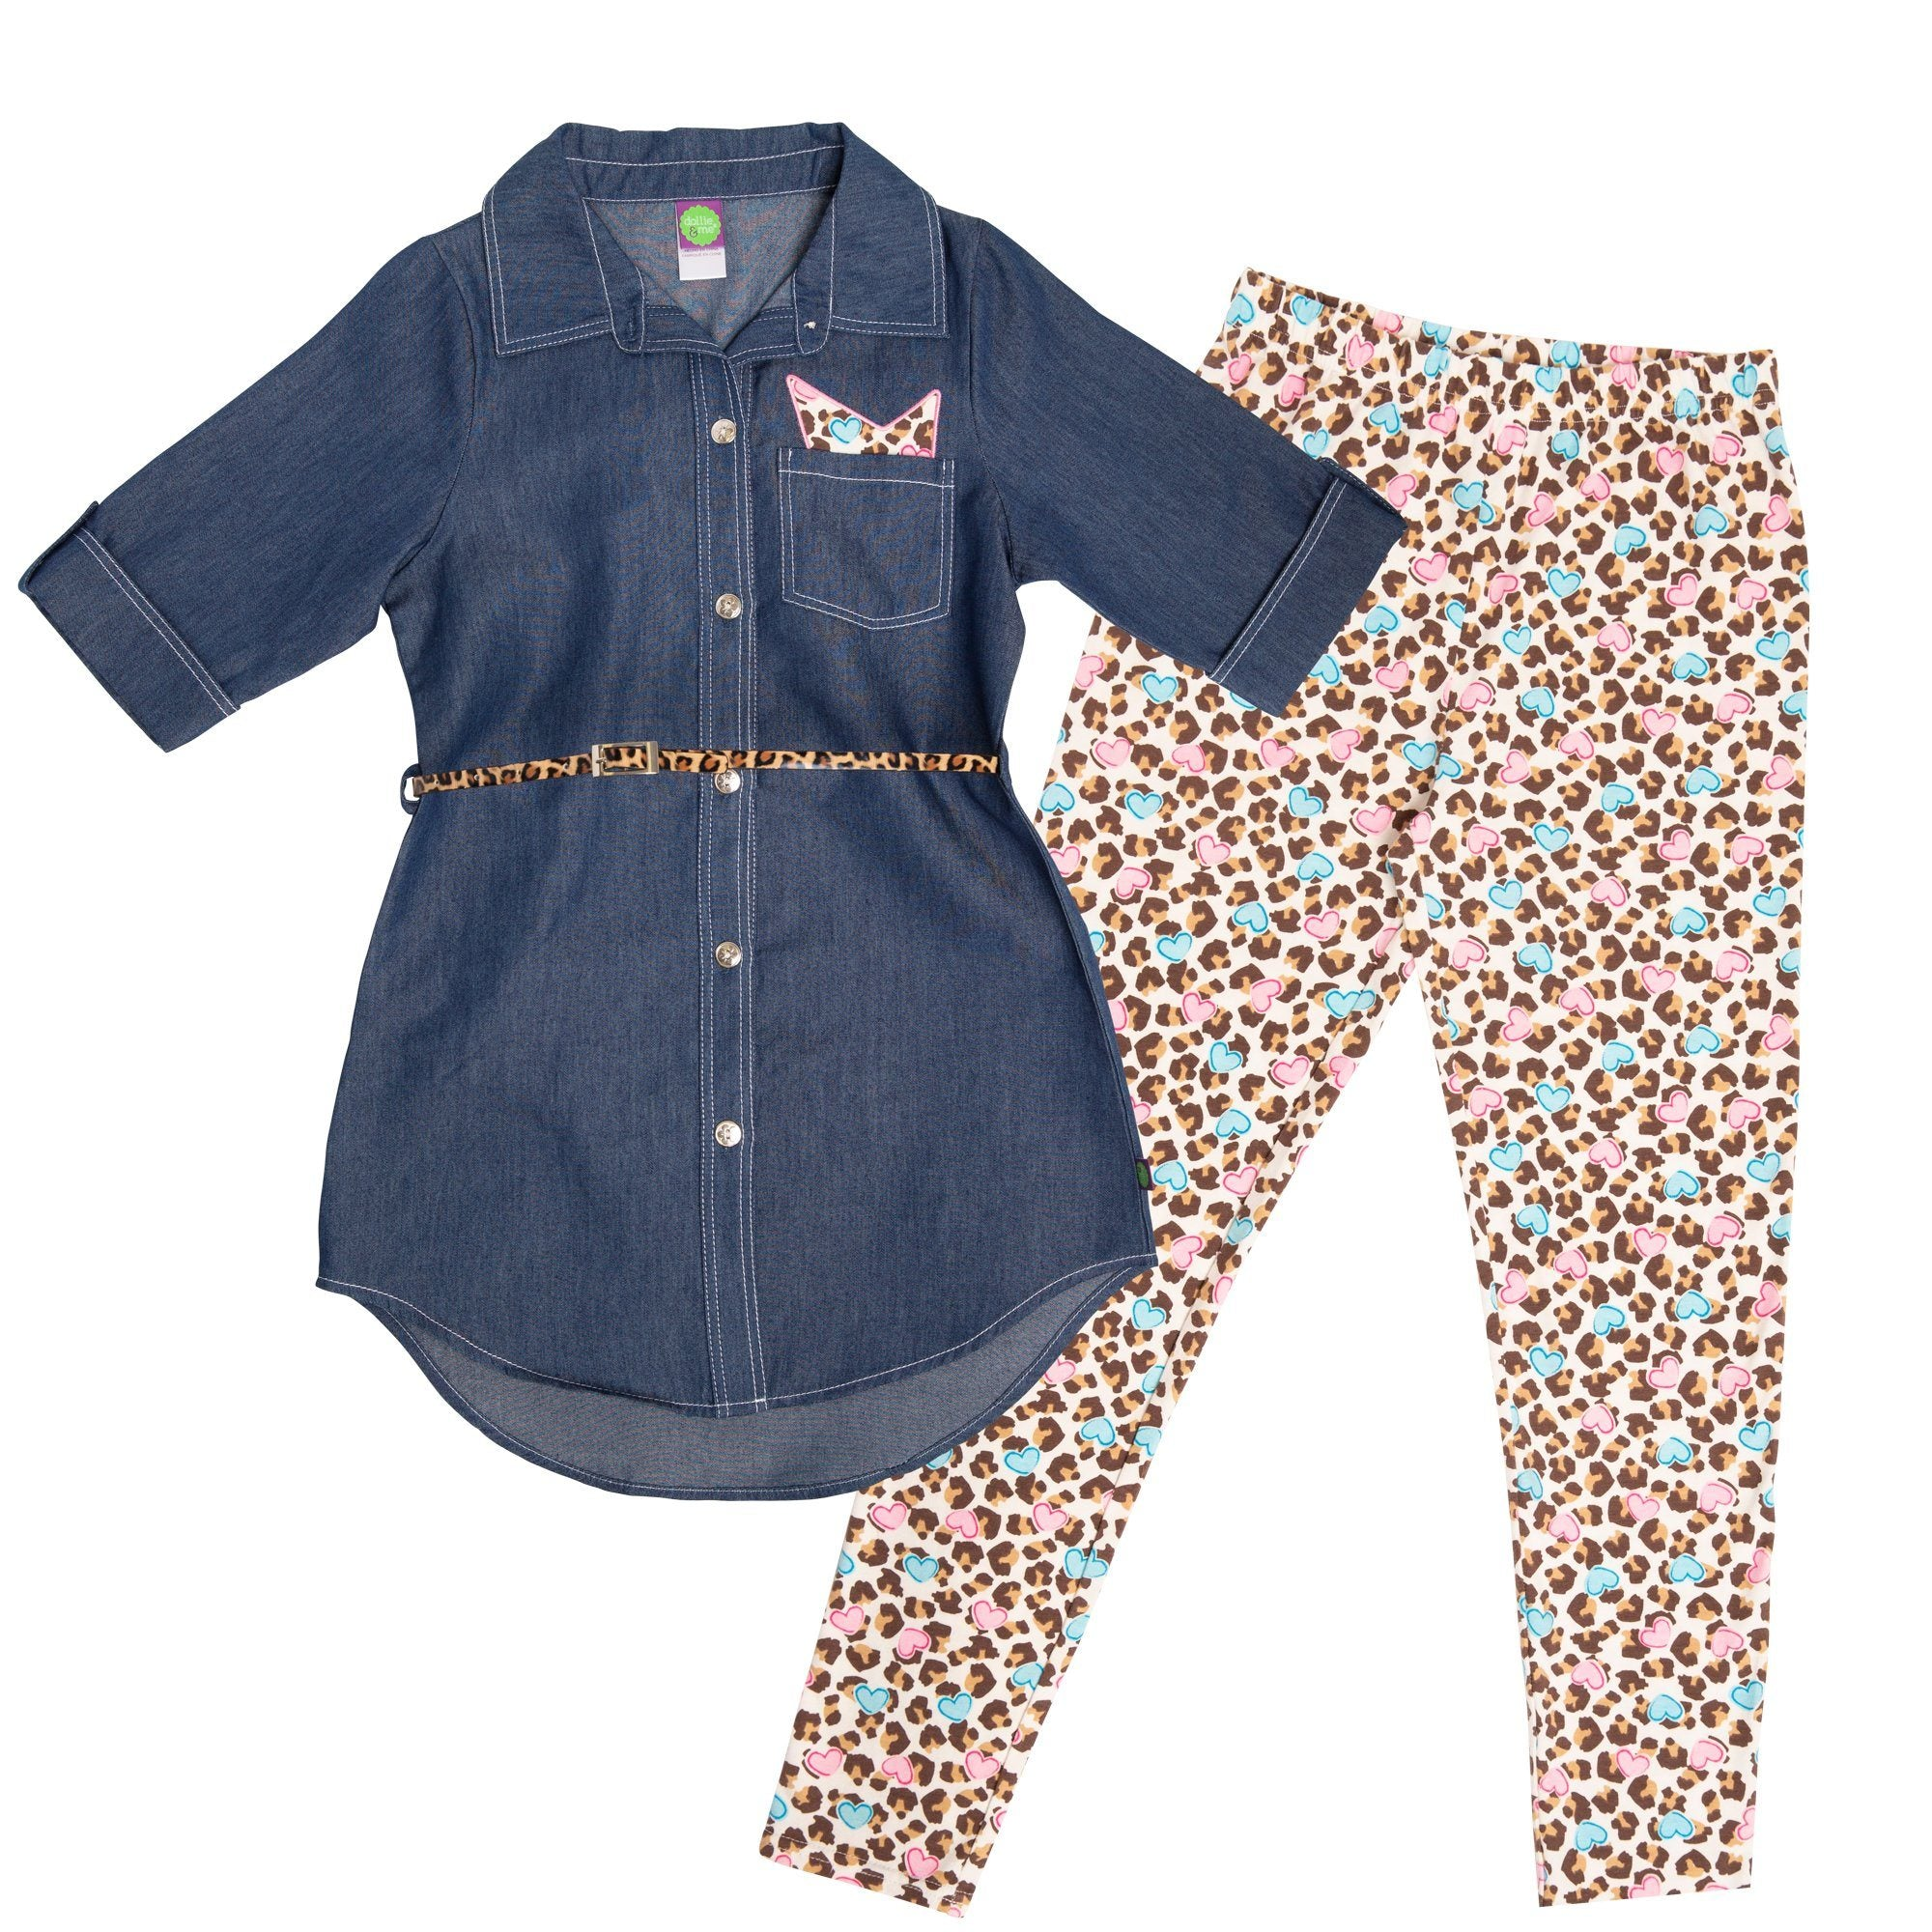 Denim tunic for Girls and matching set for dolls with leopard print belt, leopard print tights with heart pattern and leopard print belt.